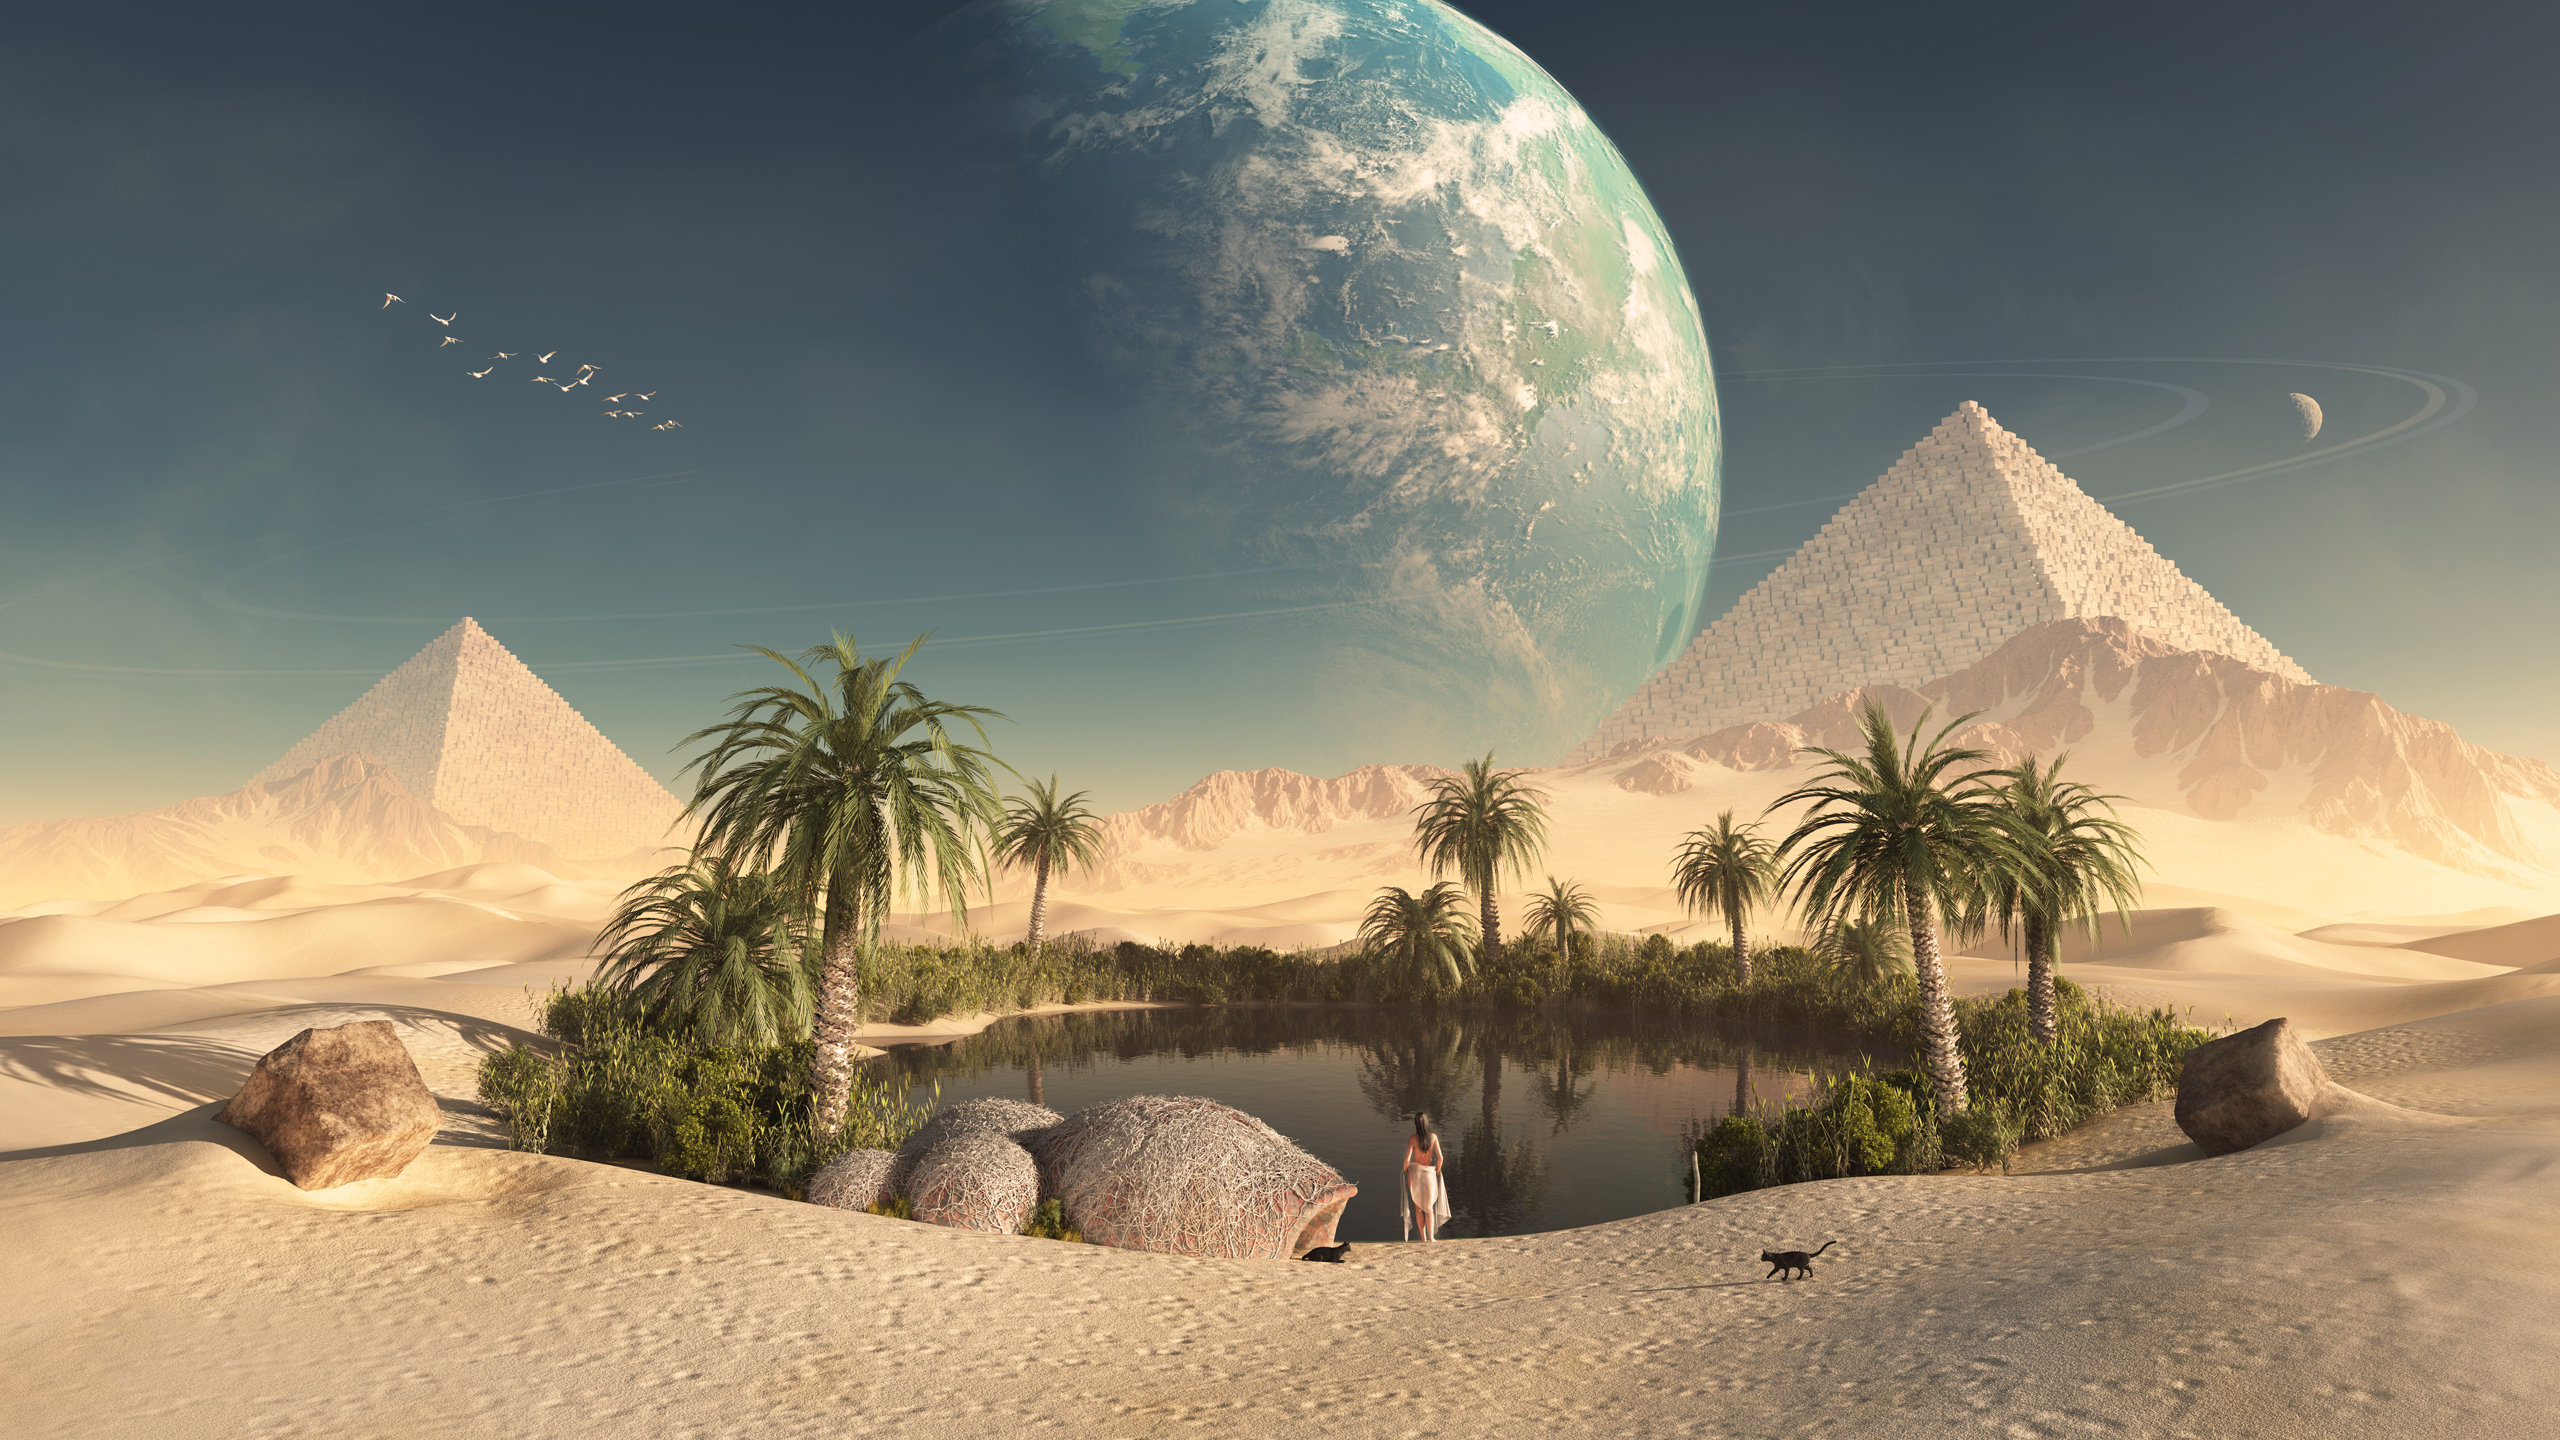 Egypt wallpapers best wallpapers for In wallpaper